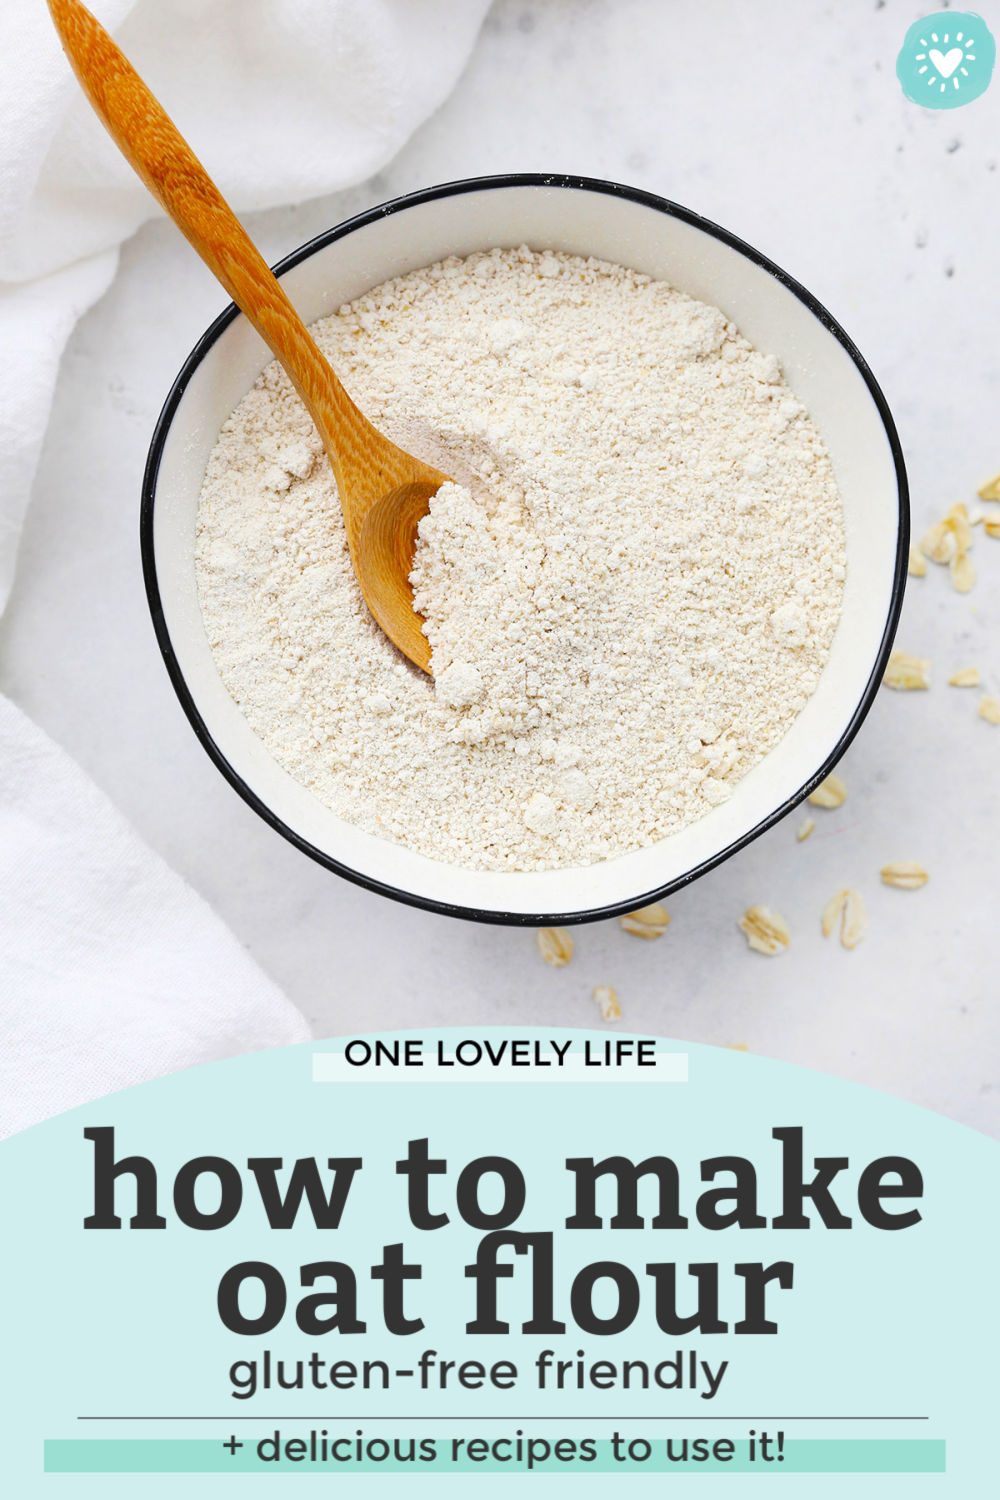 How to Make Oat Flour Tutorial from One Lovely Life